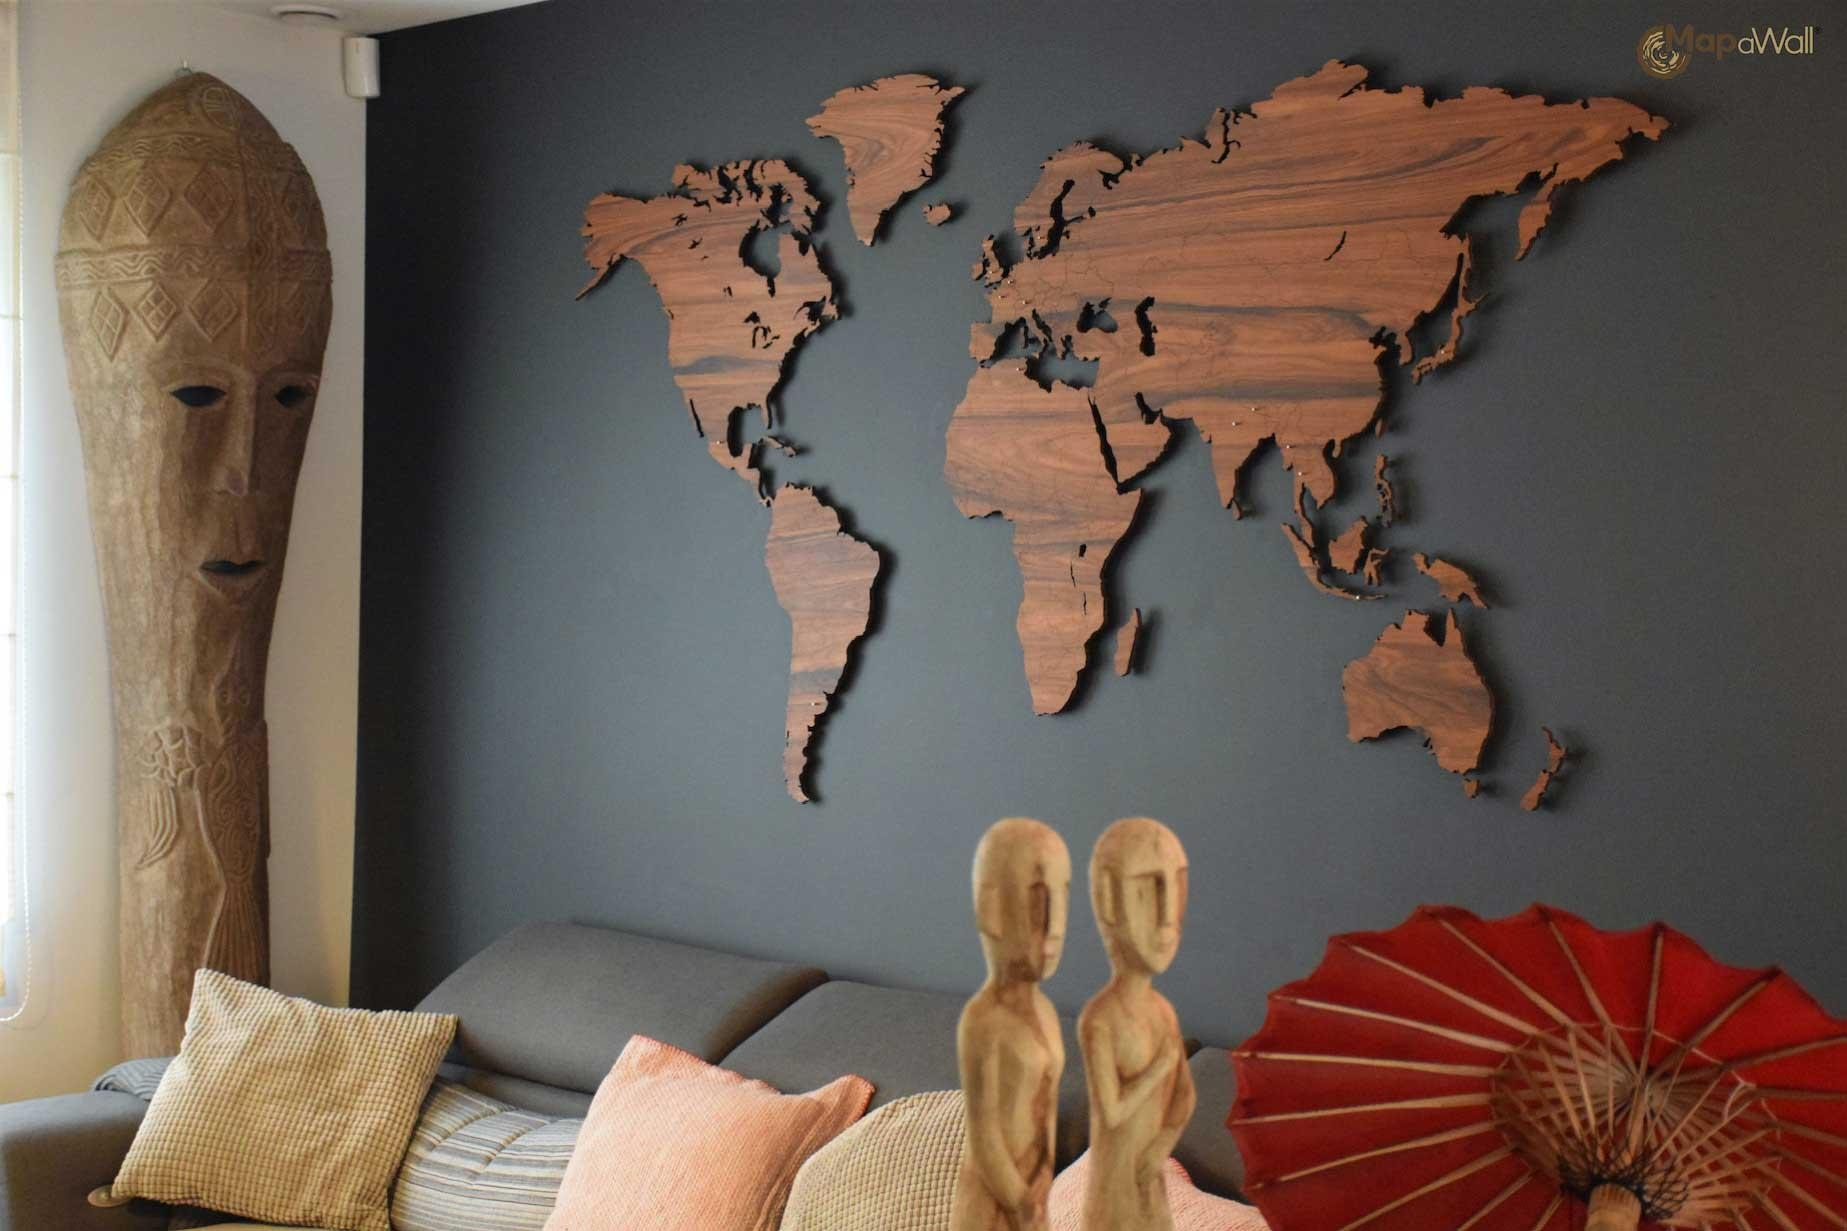 Mapawall Wooden World Map Palisander With Country Borders Pertaining To Wooden World Map Wall Art (Image 9 of 20)